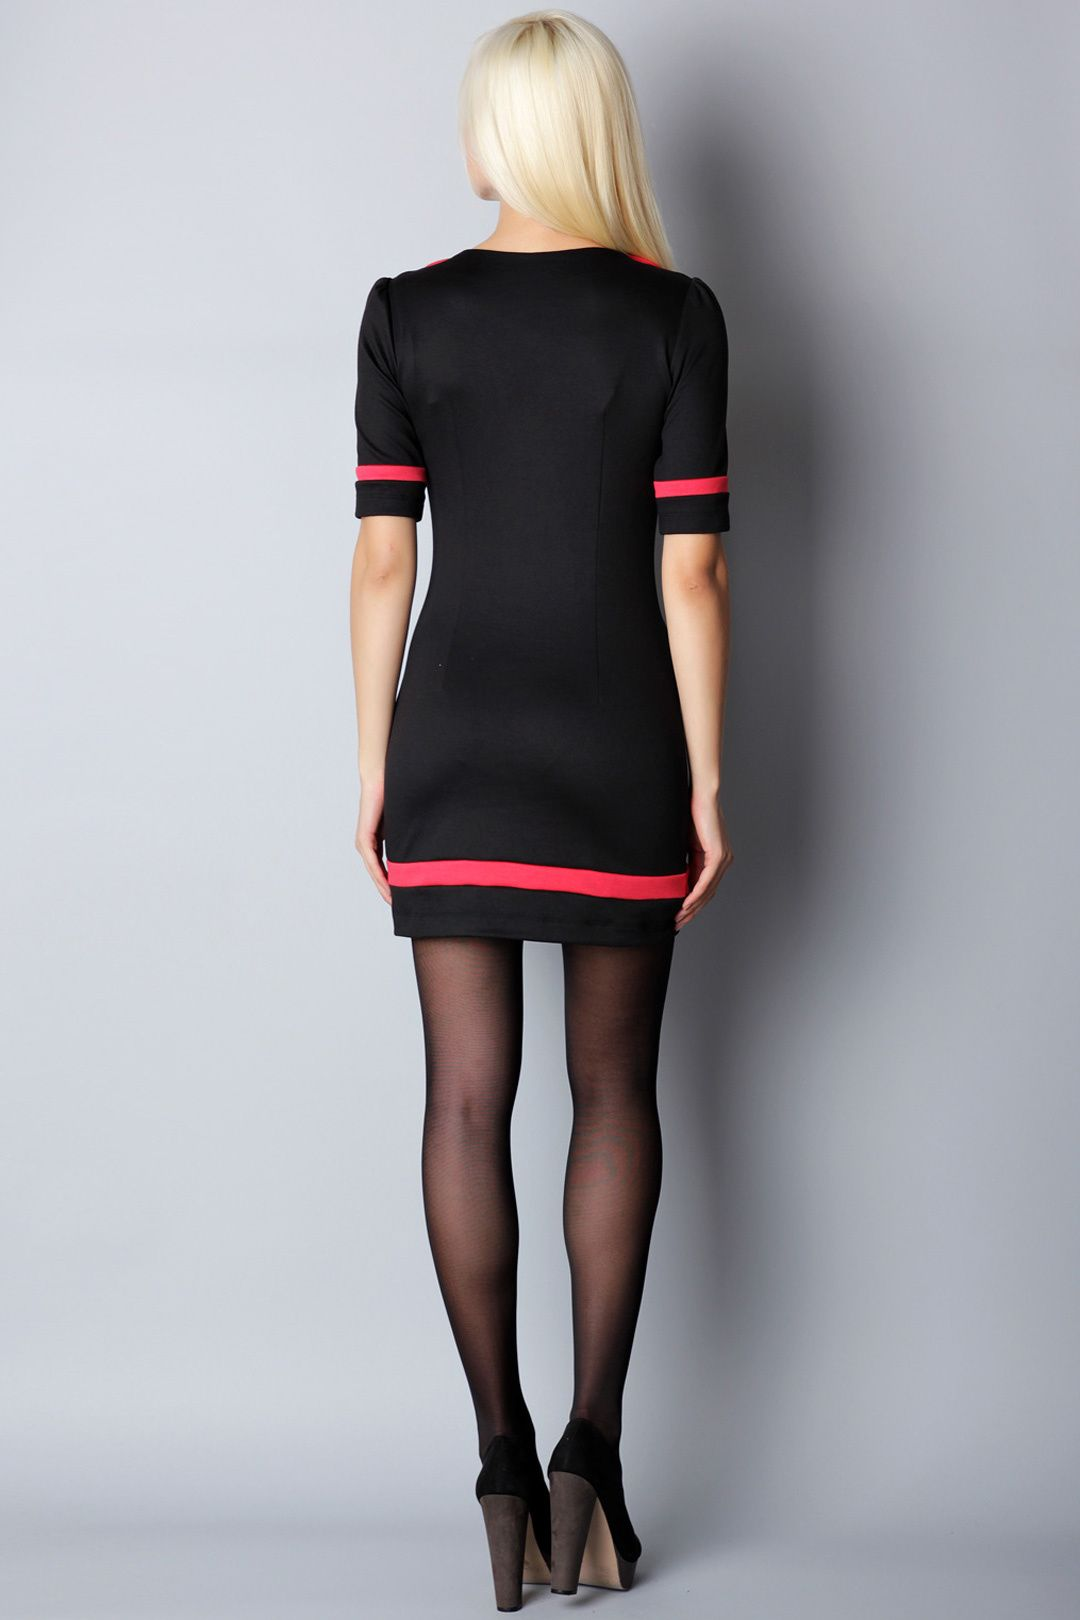 Black dress with red accents anna soroka dresses and